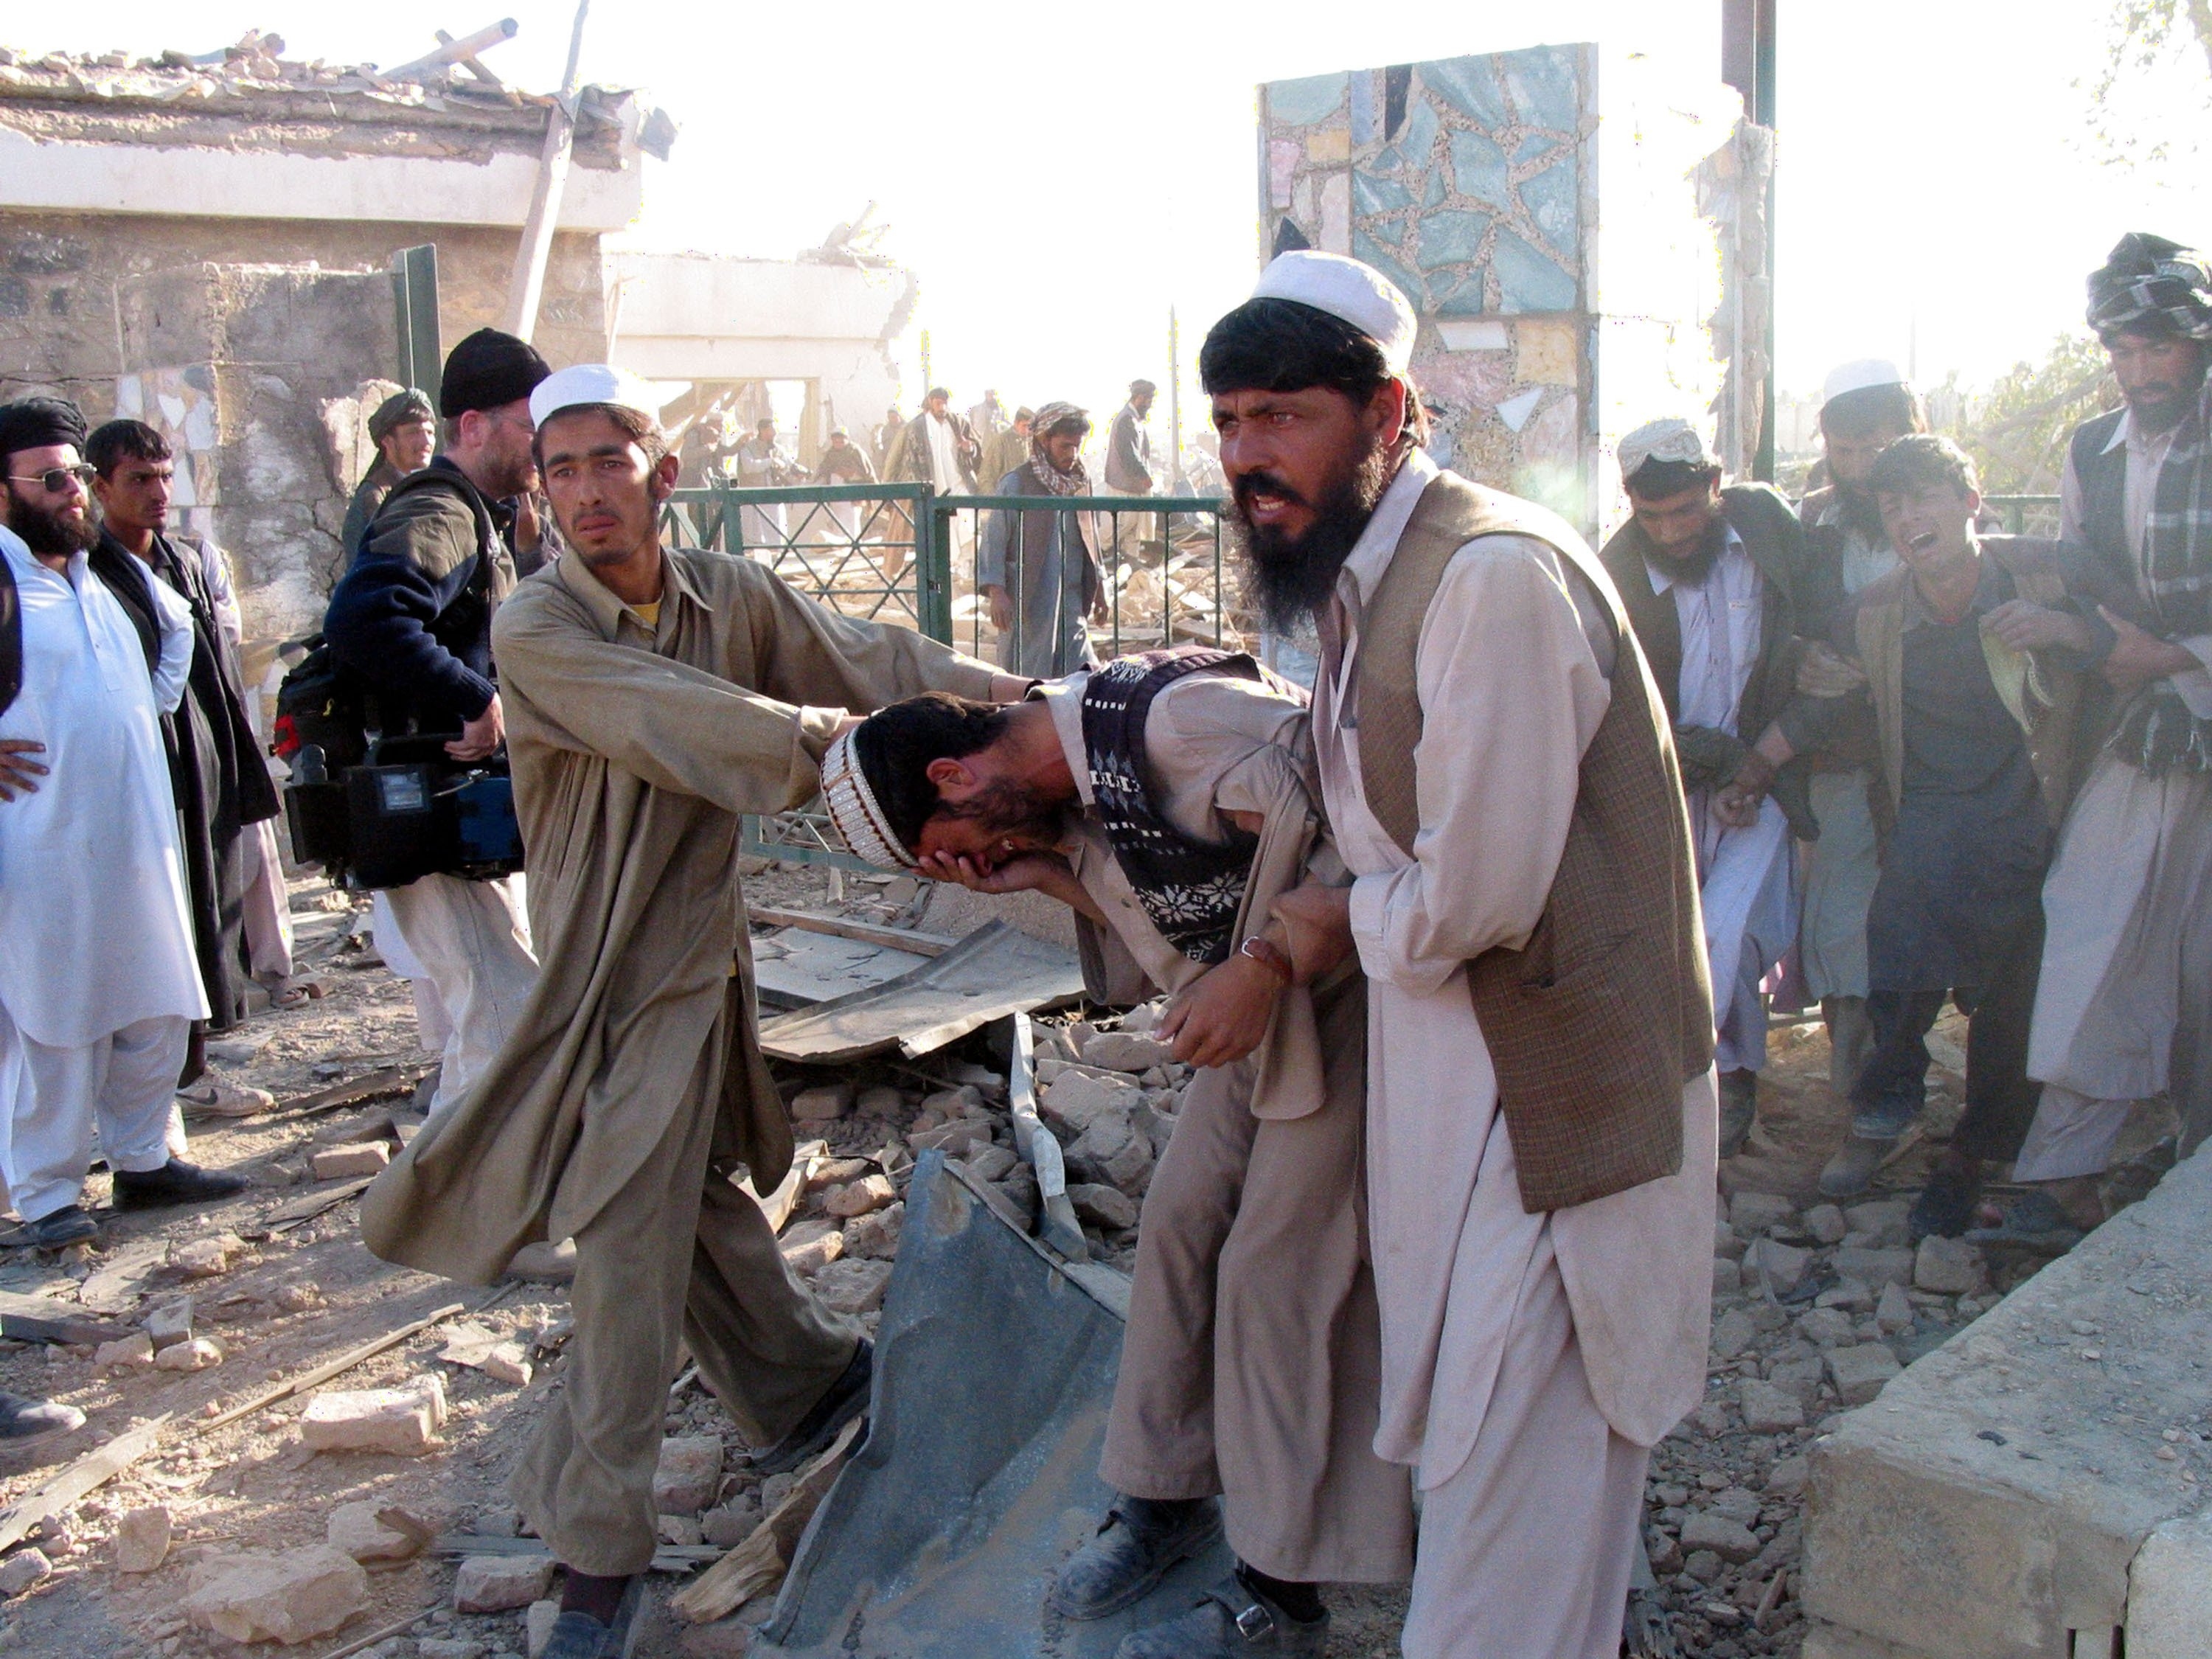 Two men mourn the death of their brother after he was killed when U.S. jets bombed this marble tile factory overnight, in Kabul, Afghanistan, Nov. 11, 2001. (Getty Images)